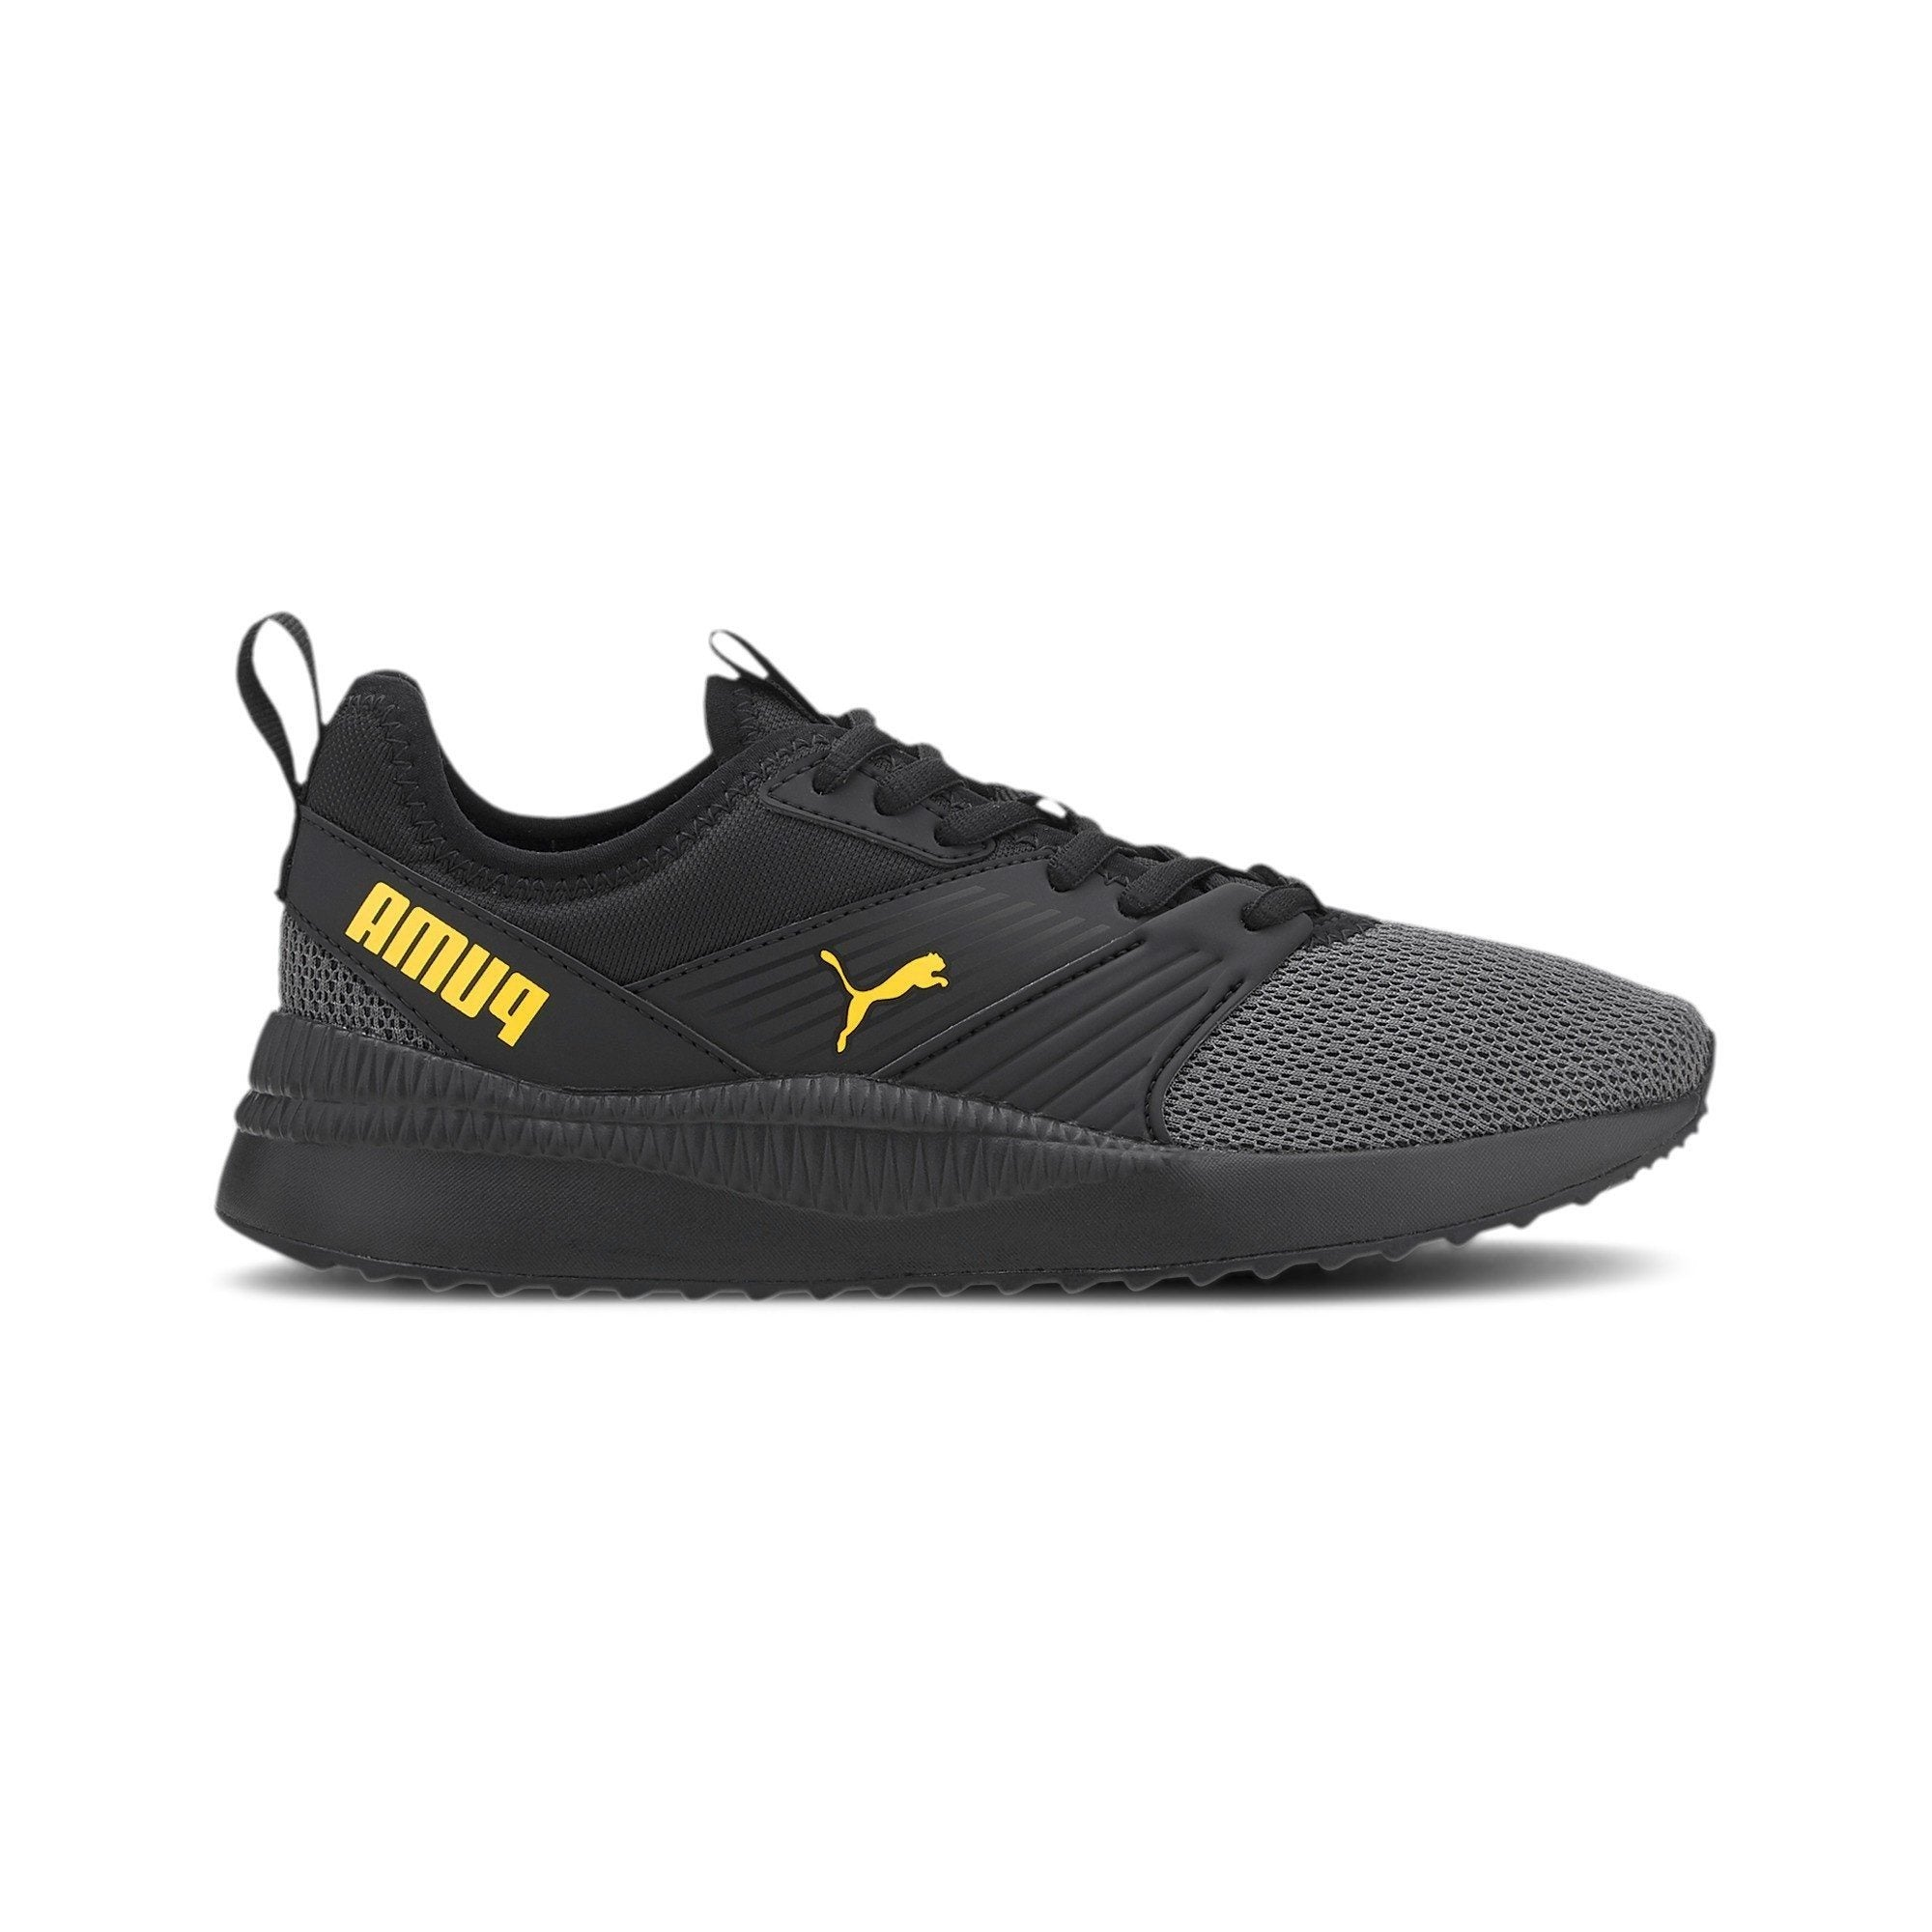 Puma Kids Pacer Next FFWD Jr - Puma Black/Dandelion SP-Footwear-Kids Puma